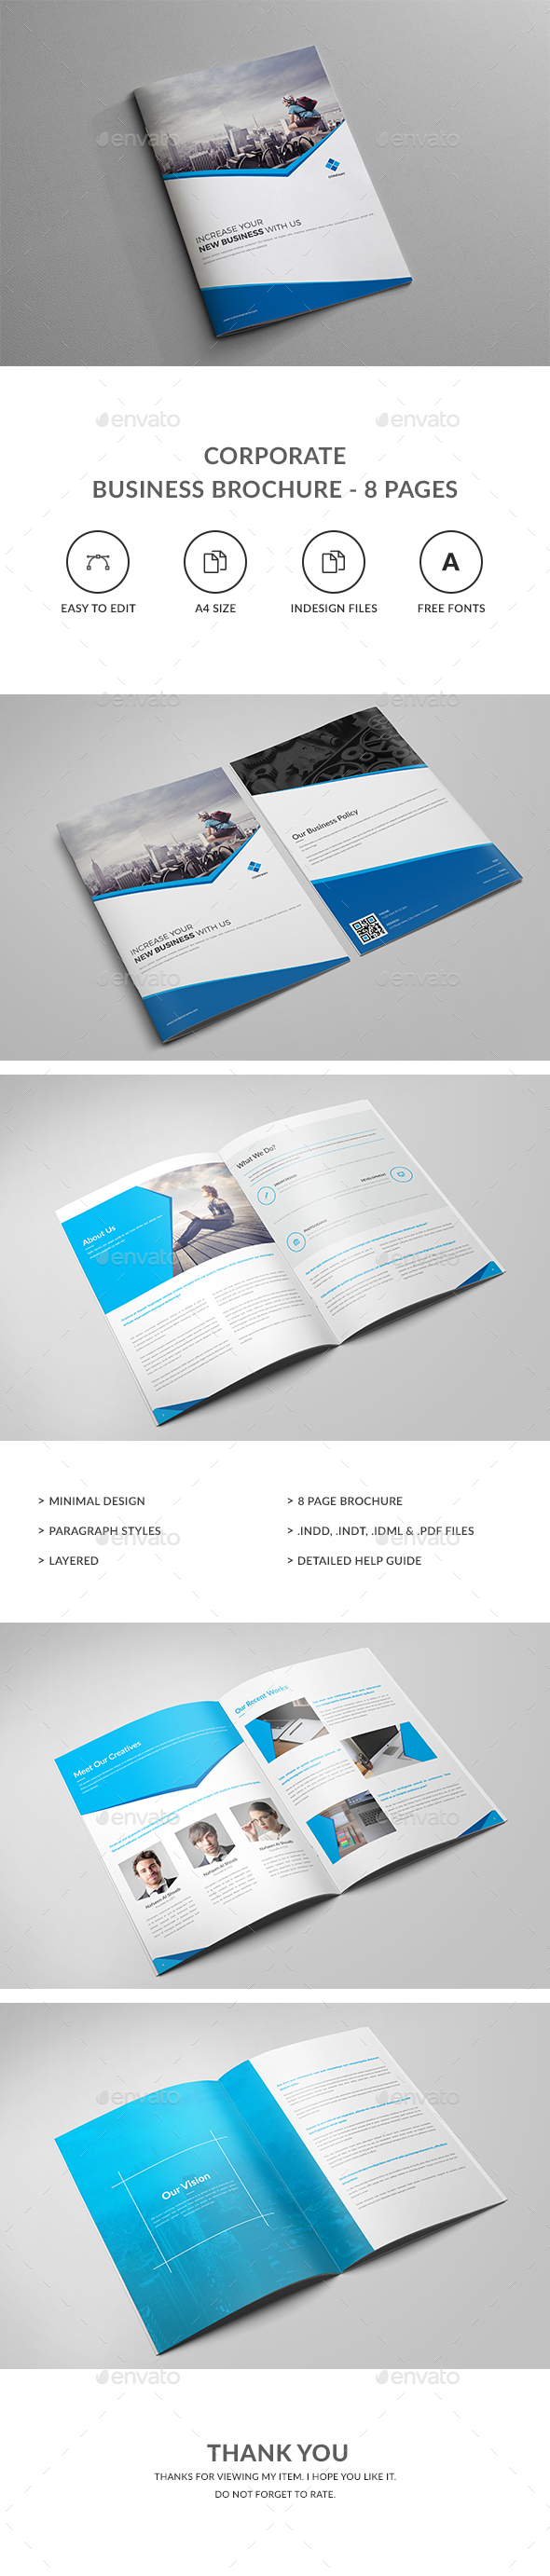 Corporate Business Brochure - 8 Pages - Corporate Brochures